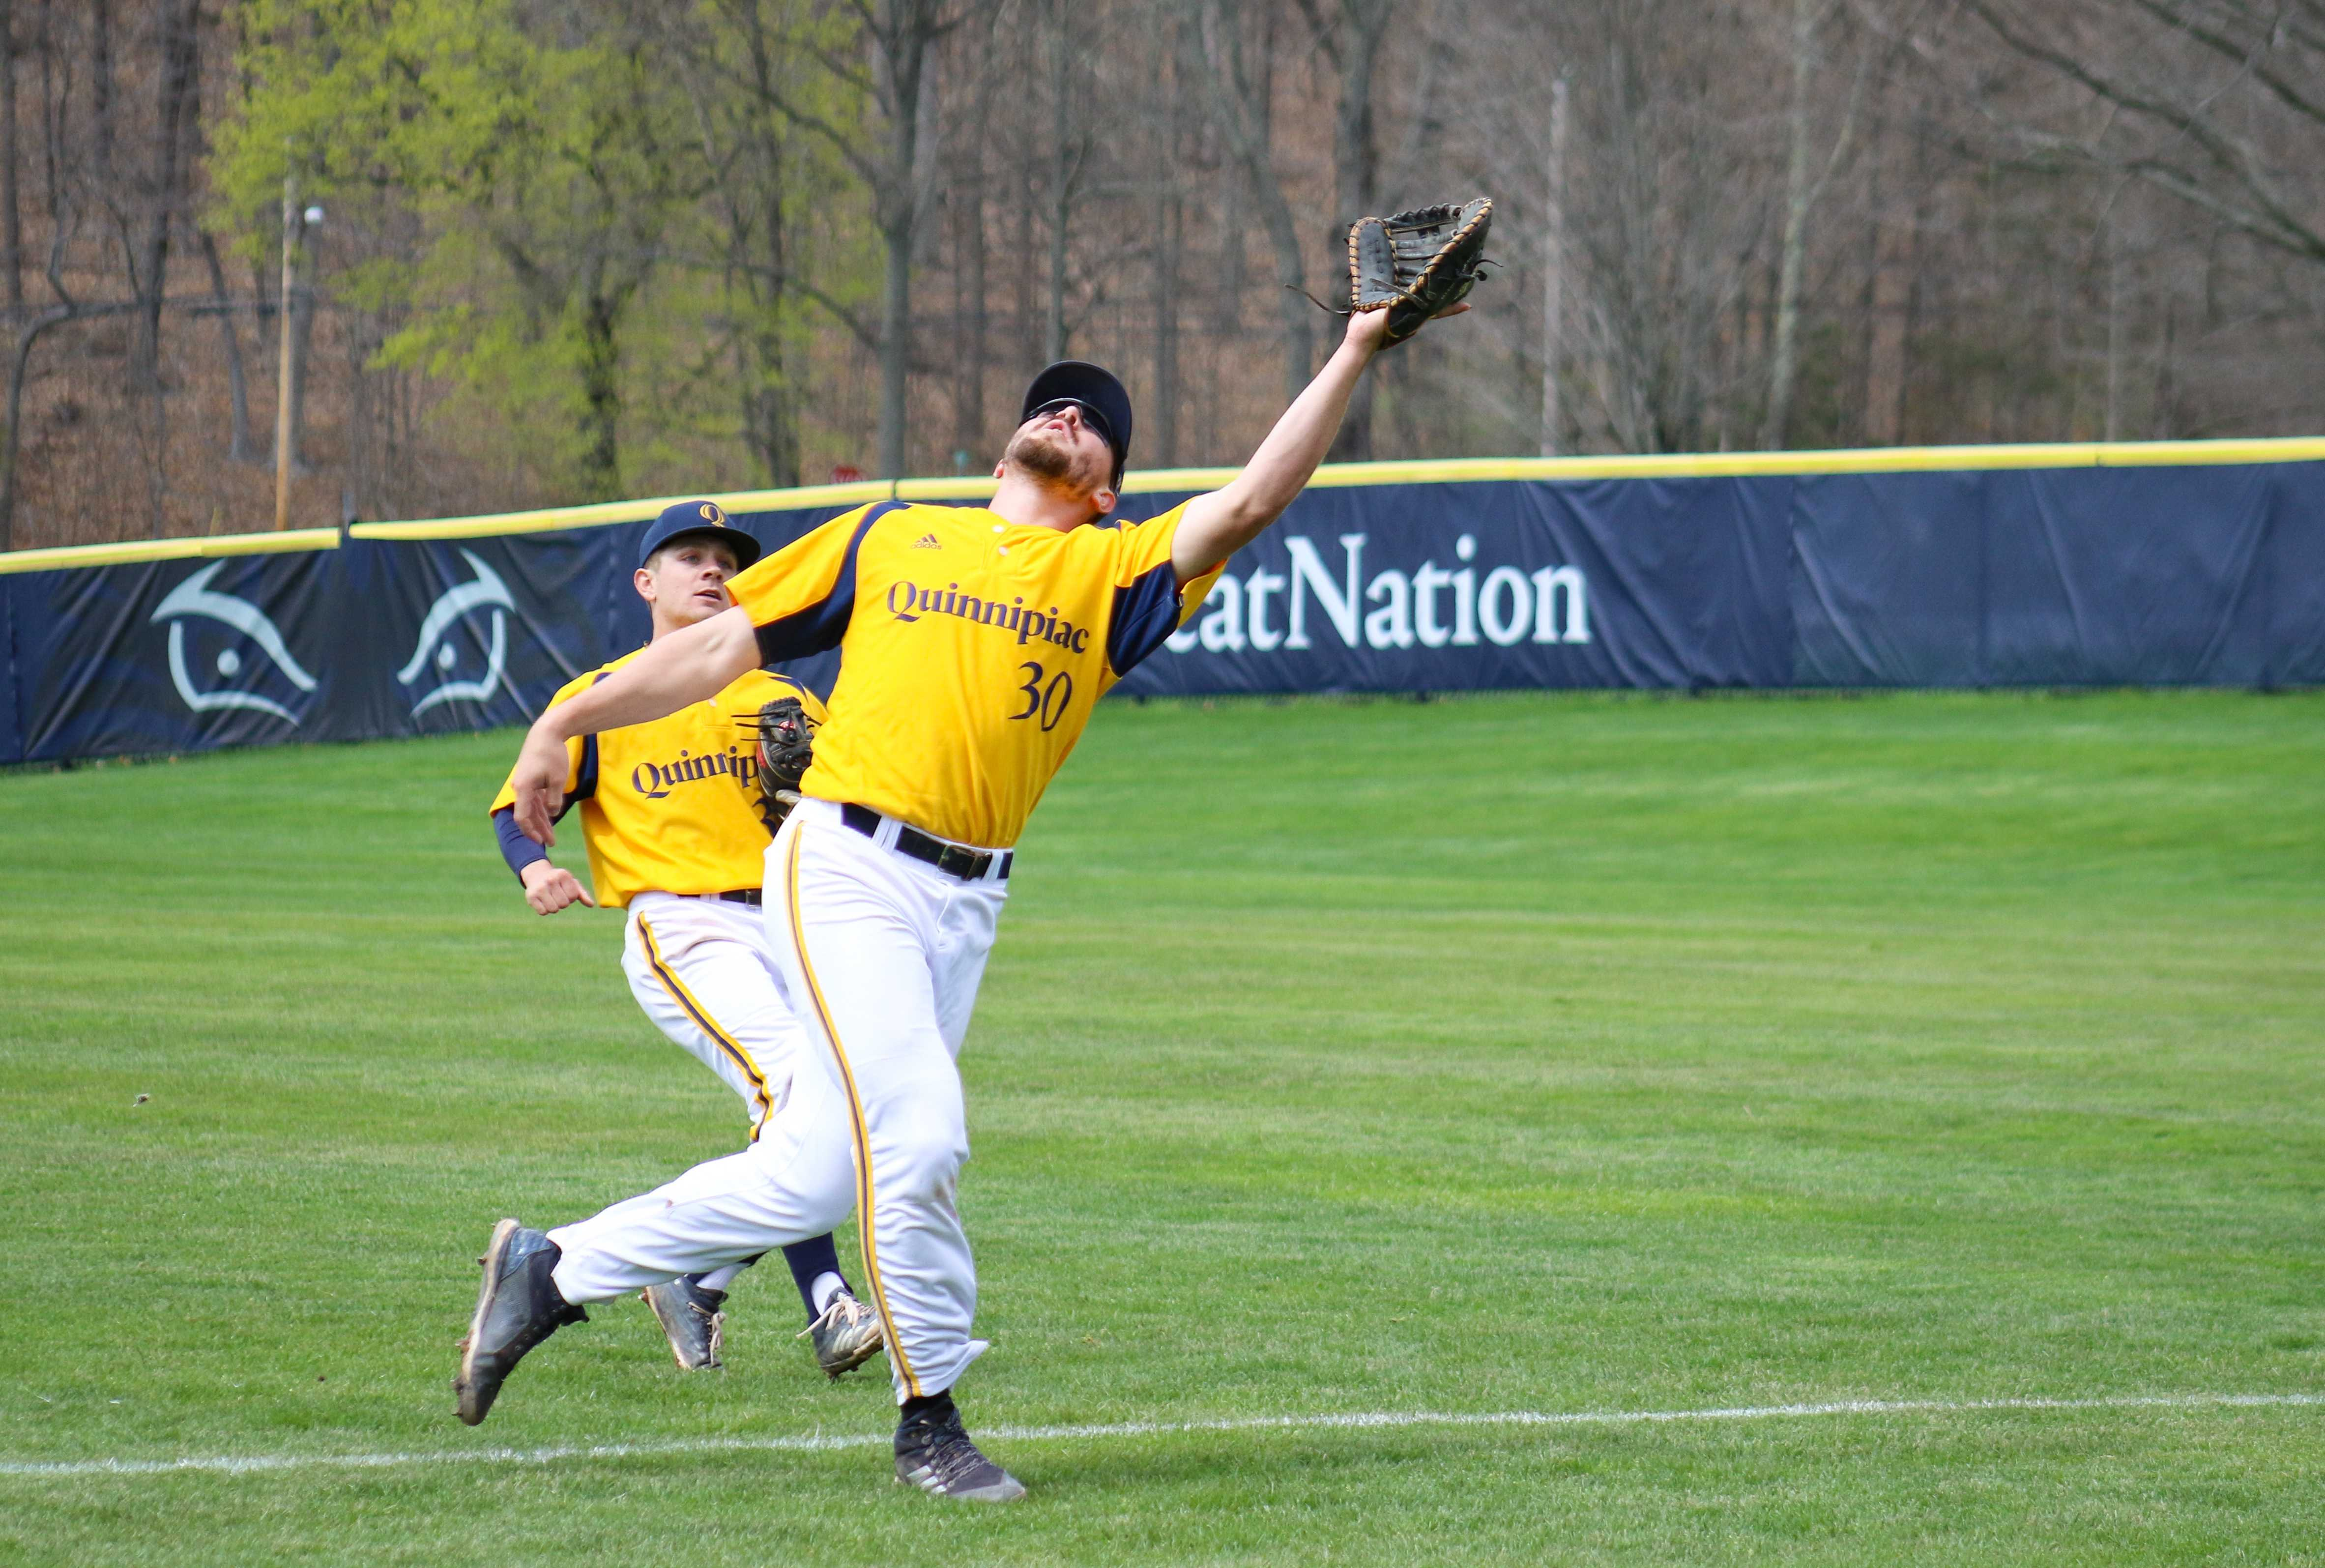 Quinnipiac baseball drops series to Iona after 9-4 loss